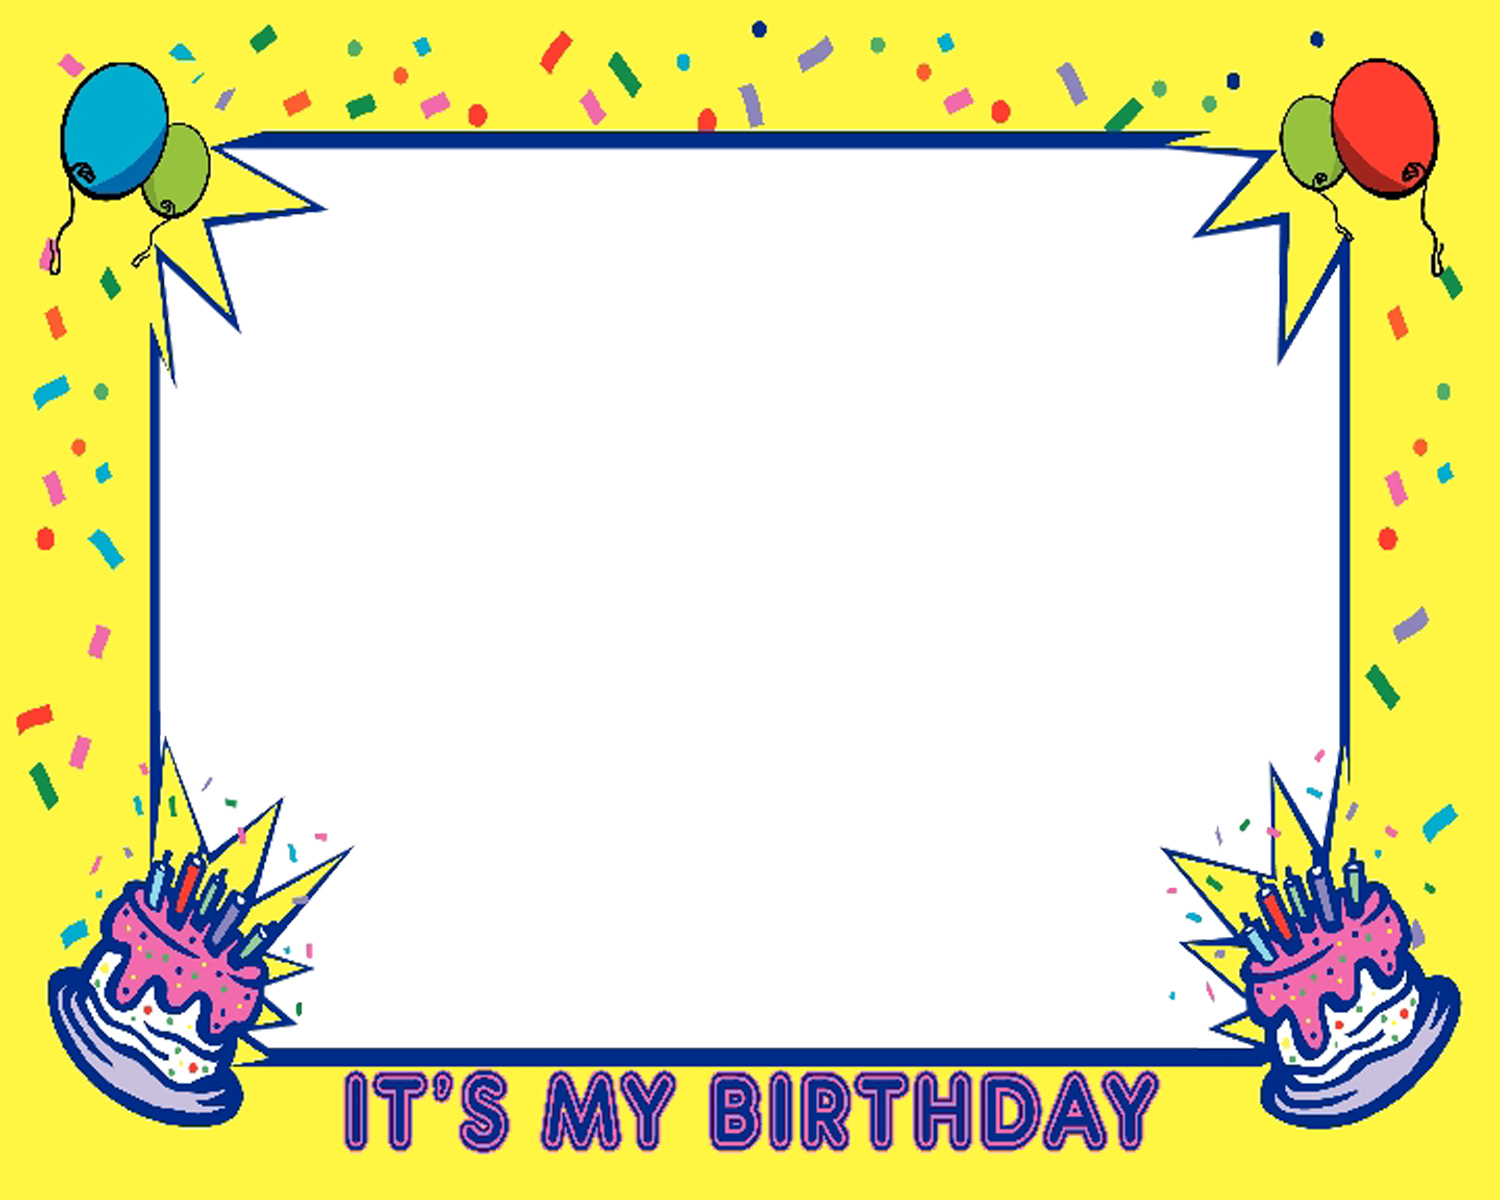 birthday picture frame images ; Bcar9zxKi